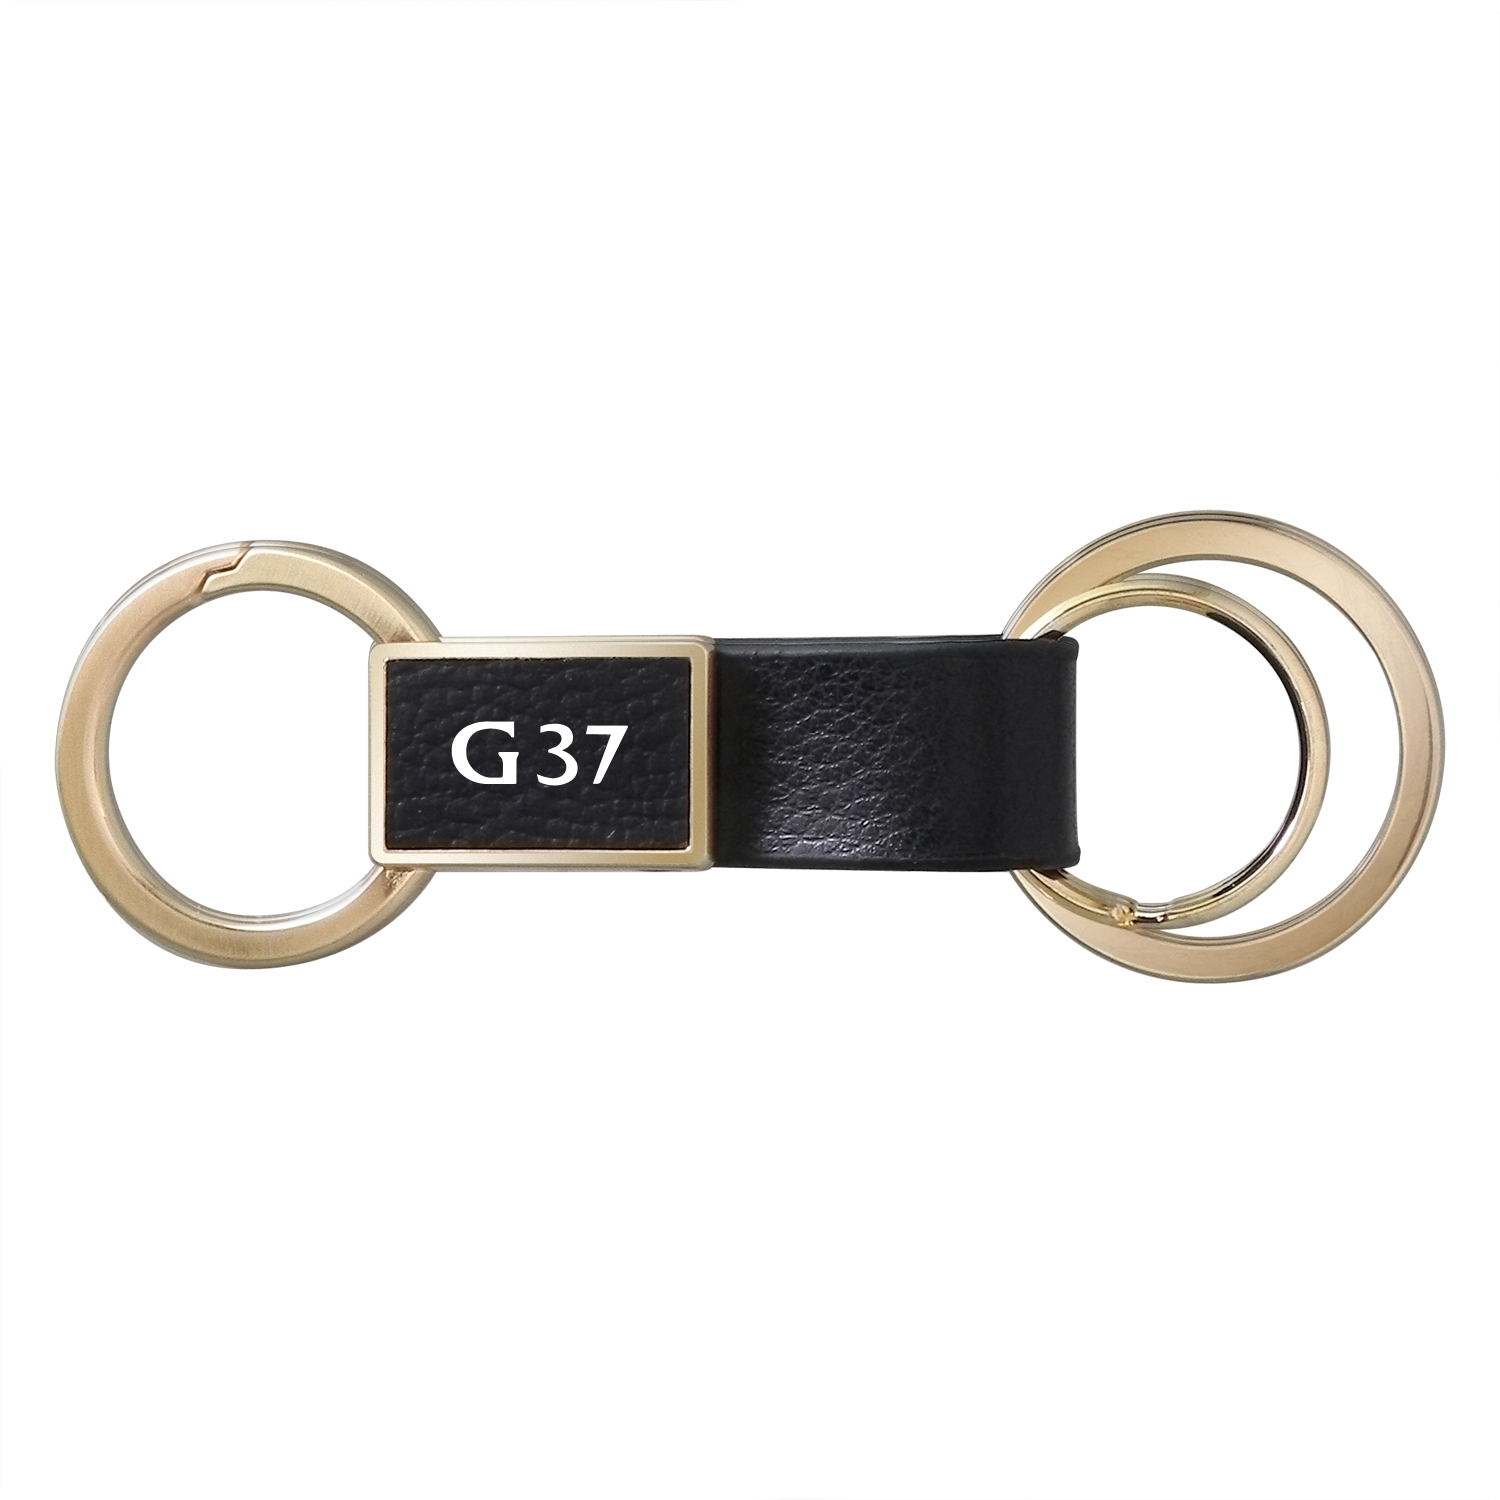 Infiniti G37 Round Hook Leather Strip Double Ring Golden Metal Key Chain